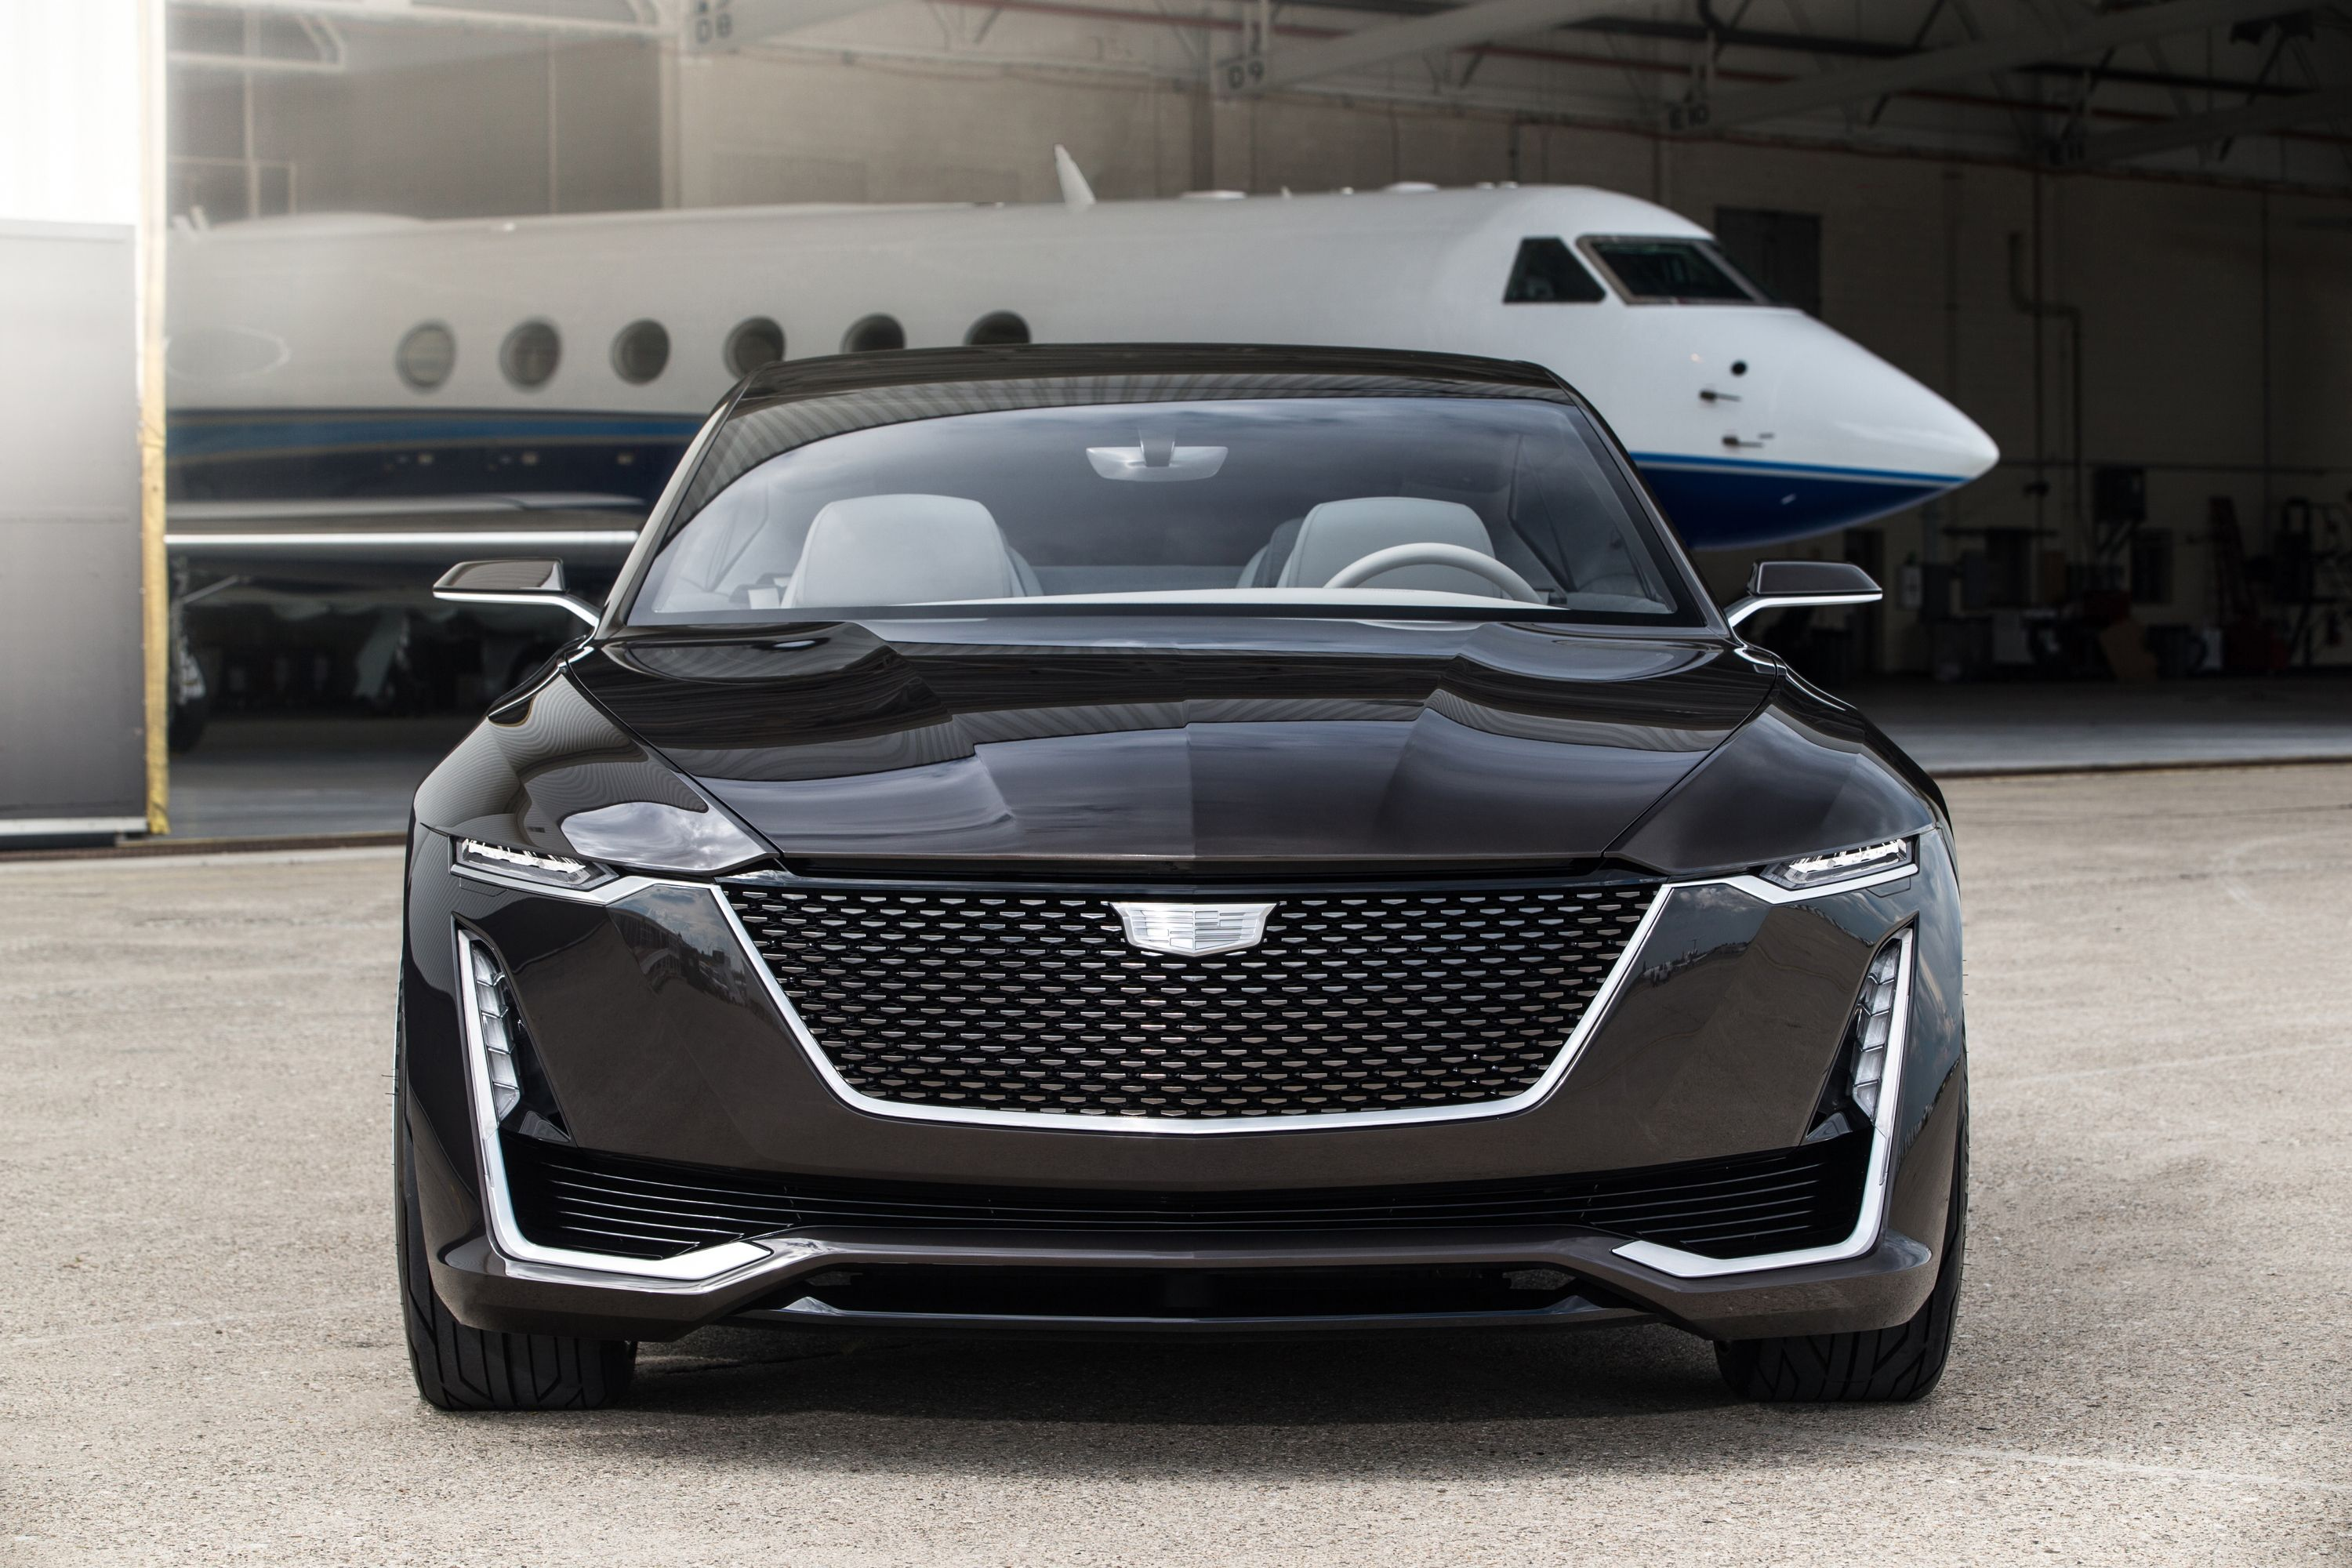 2016 cadillac escala concept automuija pinterest cadillac cars and luxury cars